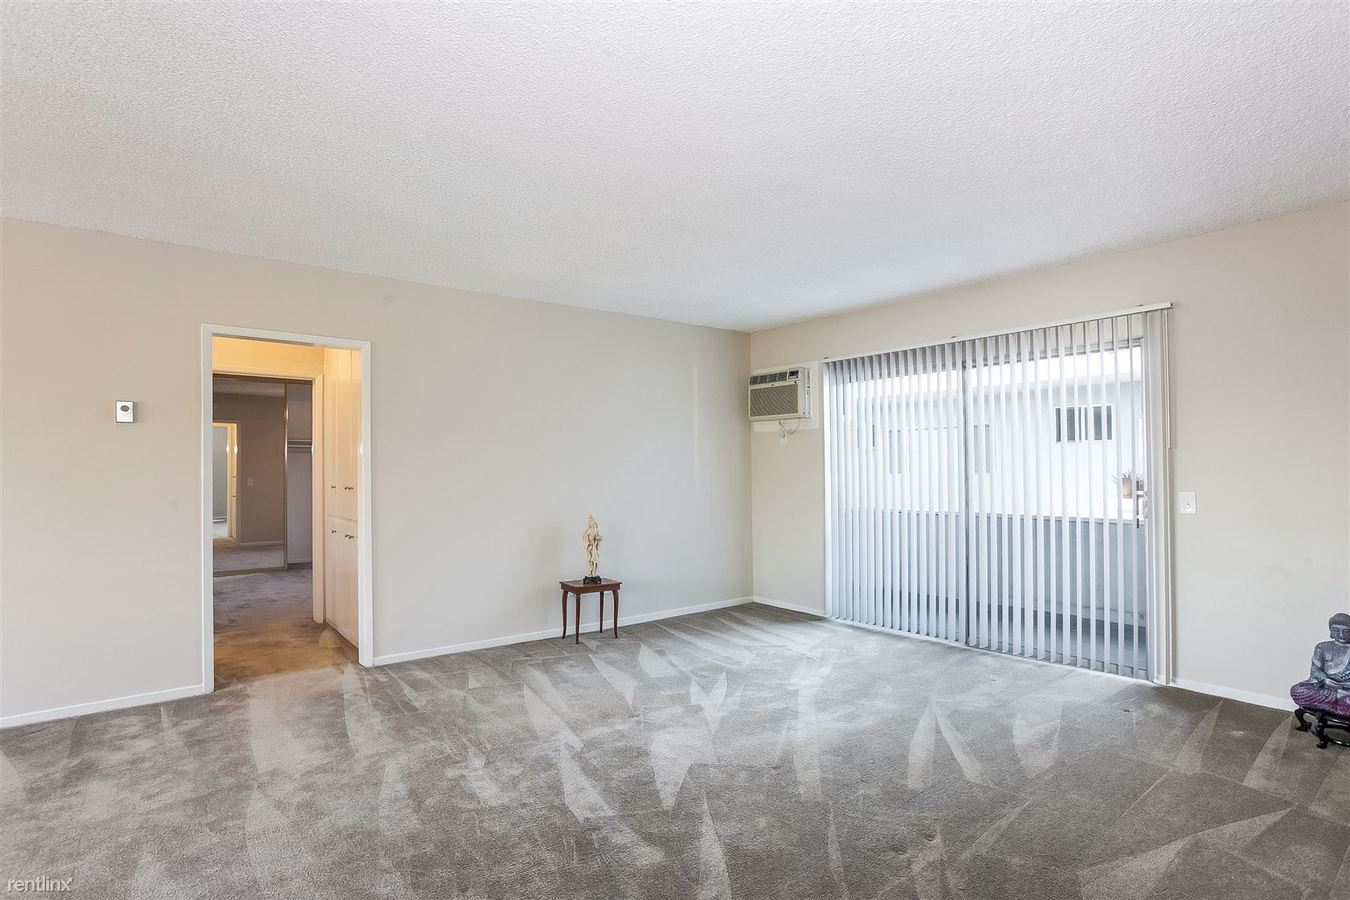 2 Bedrooms 2 Bathrooms Apartment for rent at Maple Apartments in Sierra Madre, CA